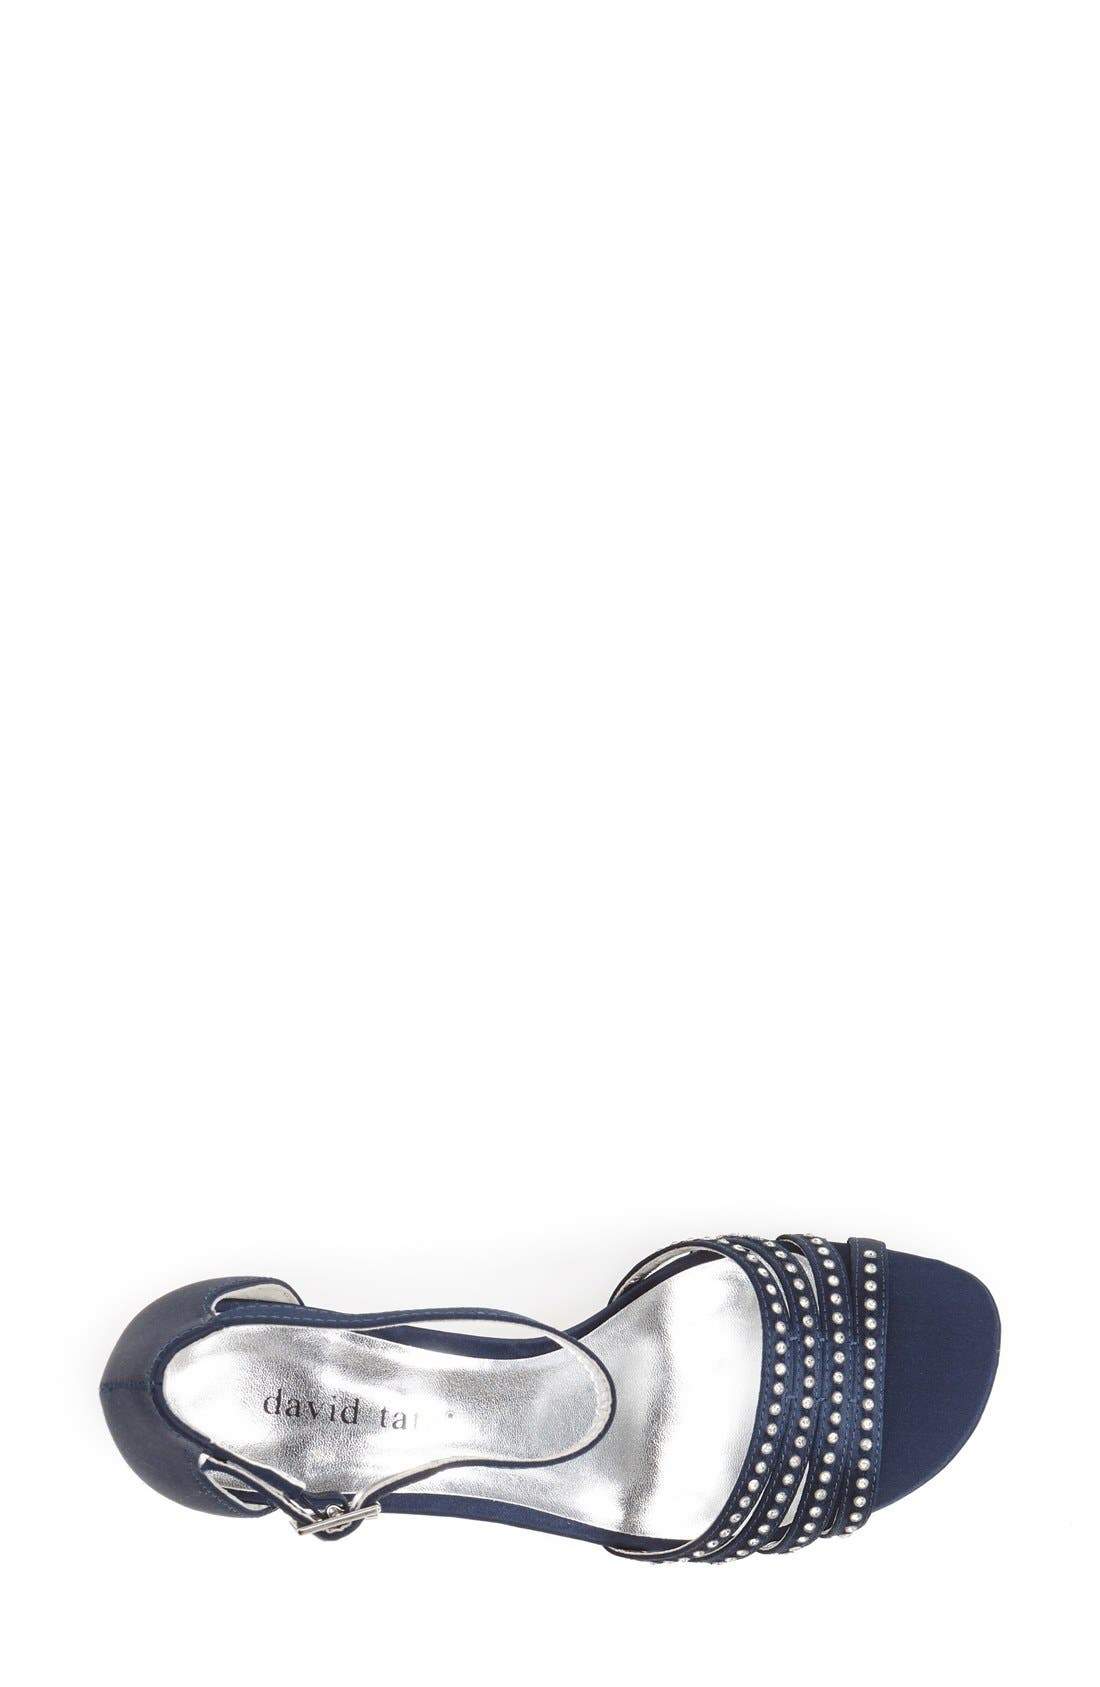 'Terra' Ankle Strap Sandal,                             Alternate thumbnail 3, color,                             Navy Satin